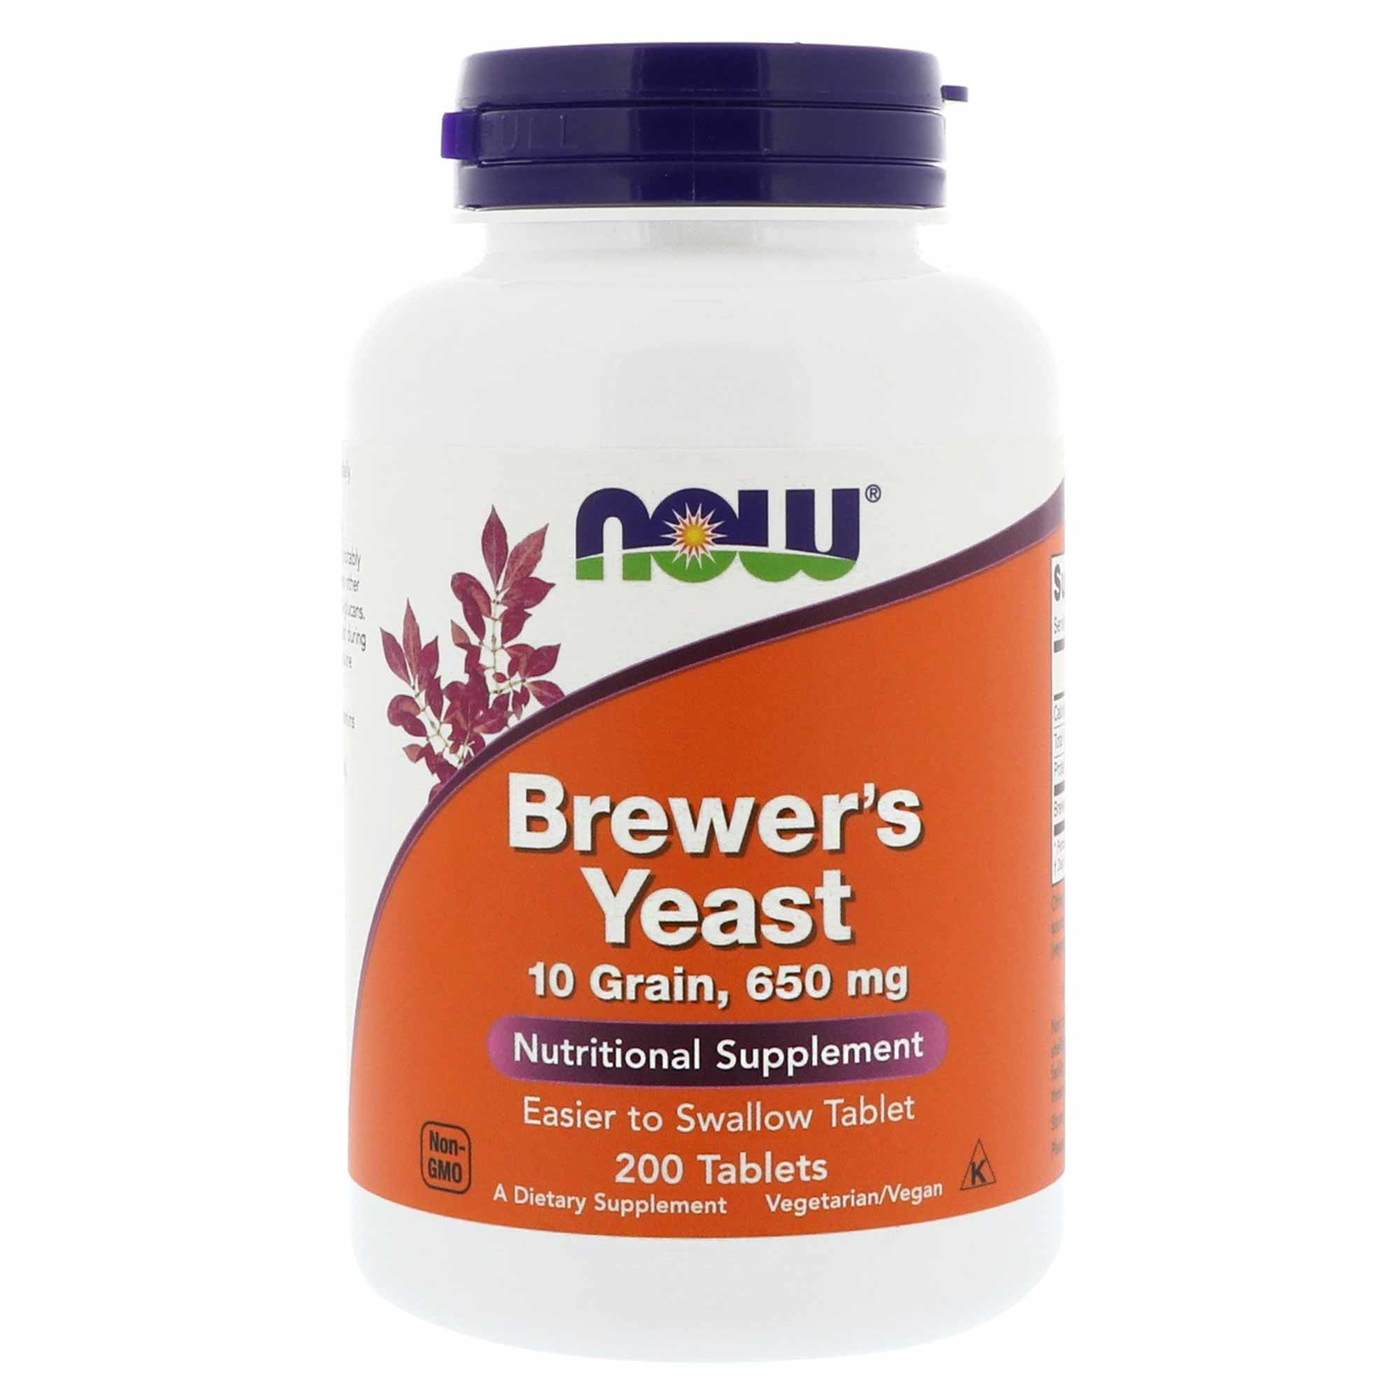 Brewers Yeast - 650 mg - 200 Tablets